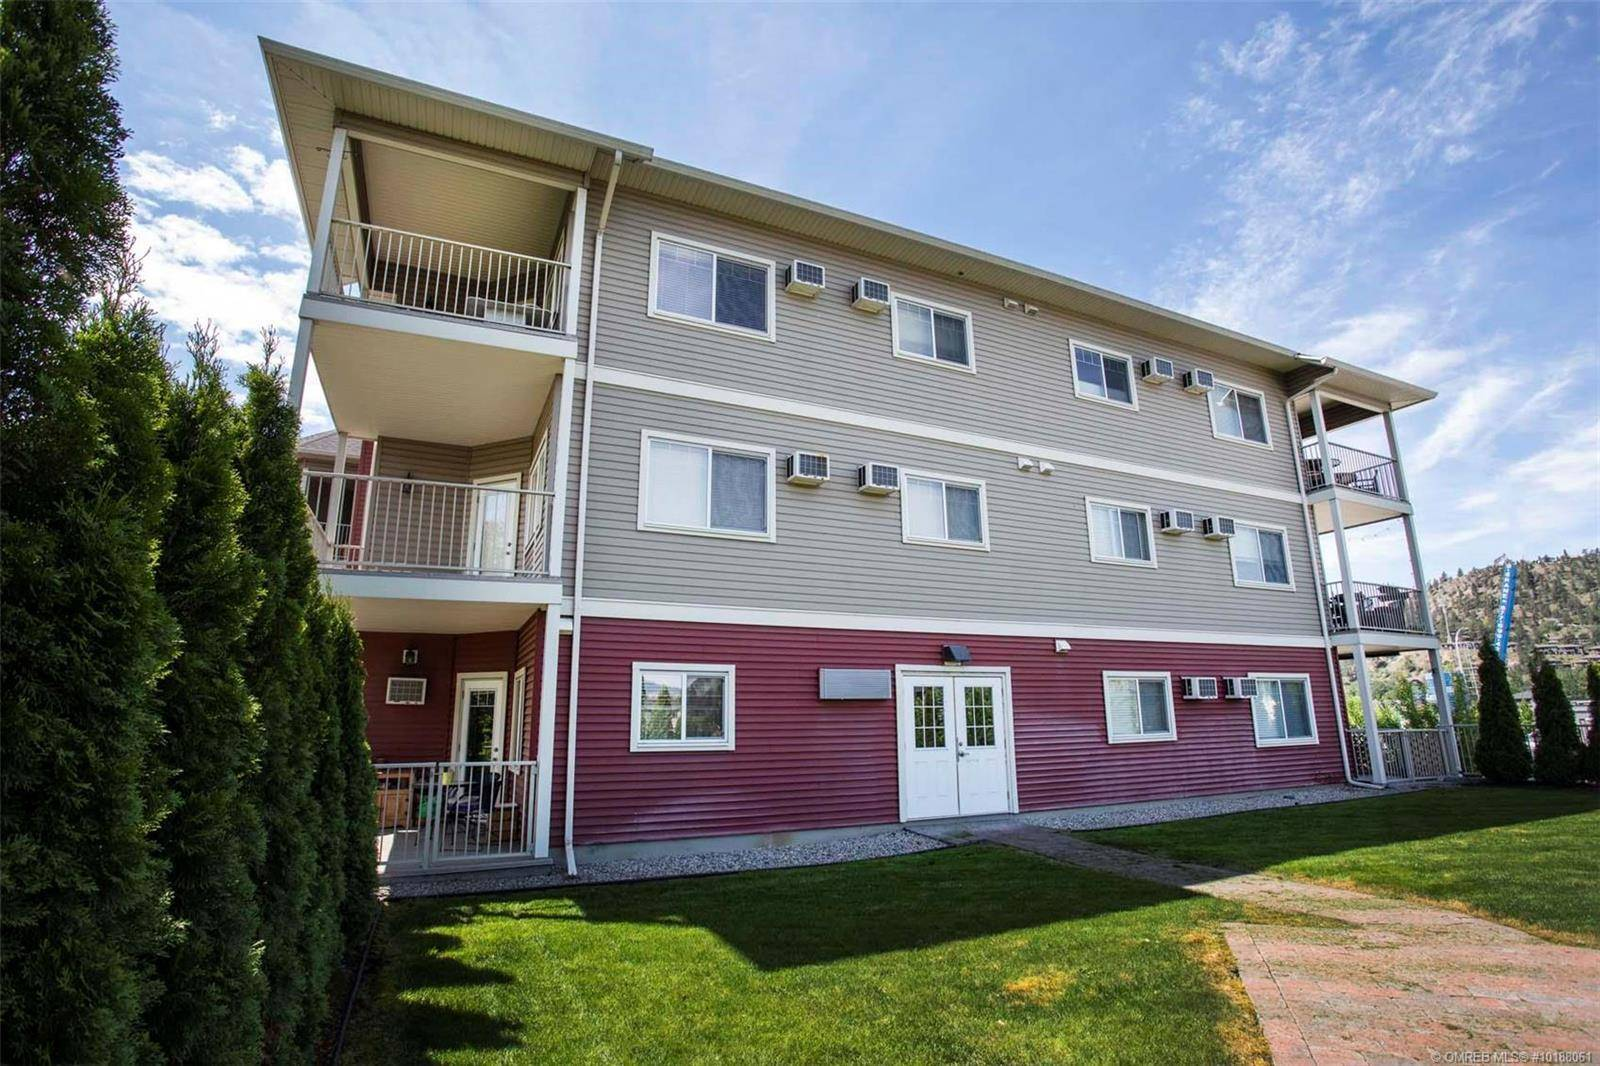 Condo for sale at 345 Mills Rd Unit 205 Kelowna British Columbia - MLS: 10188061